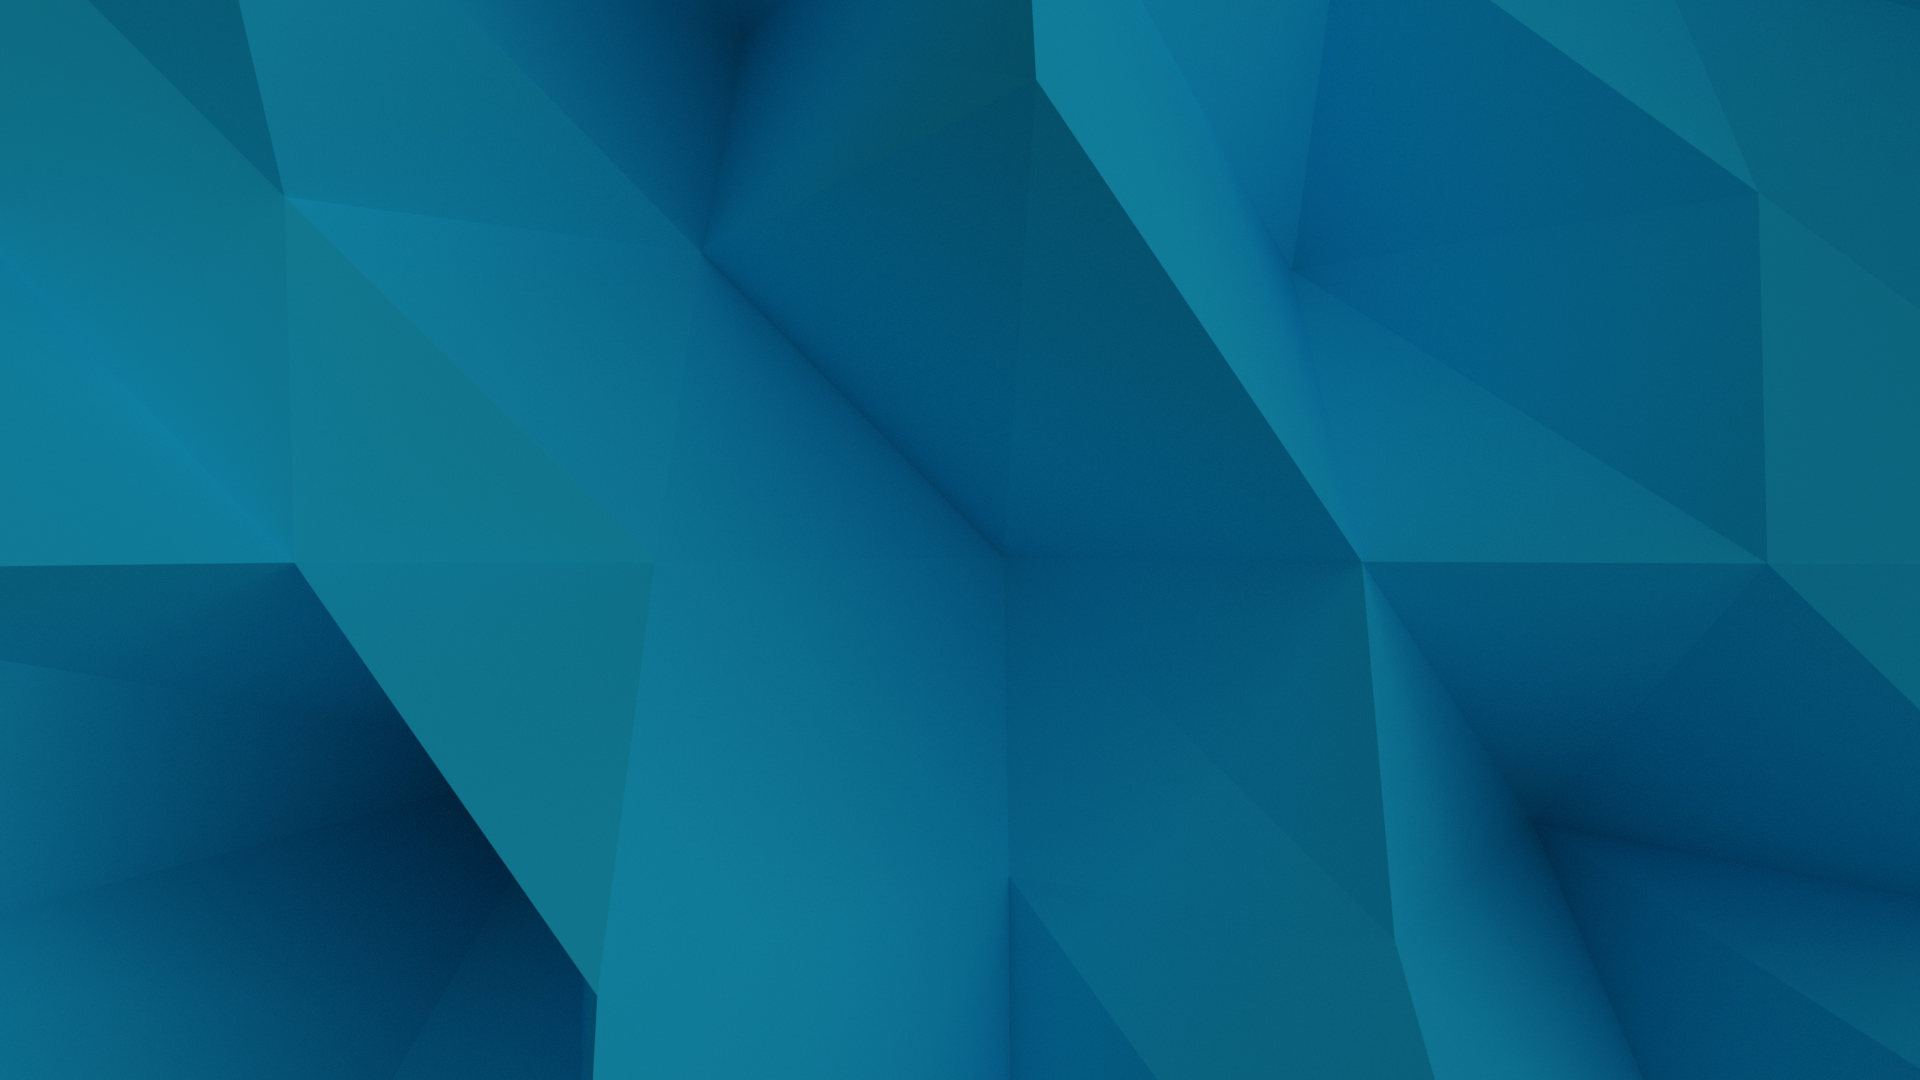 Low Poly blue